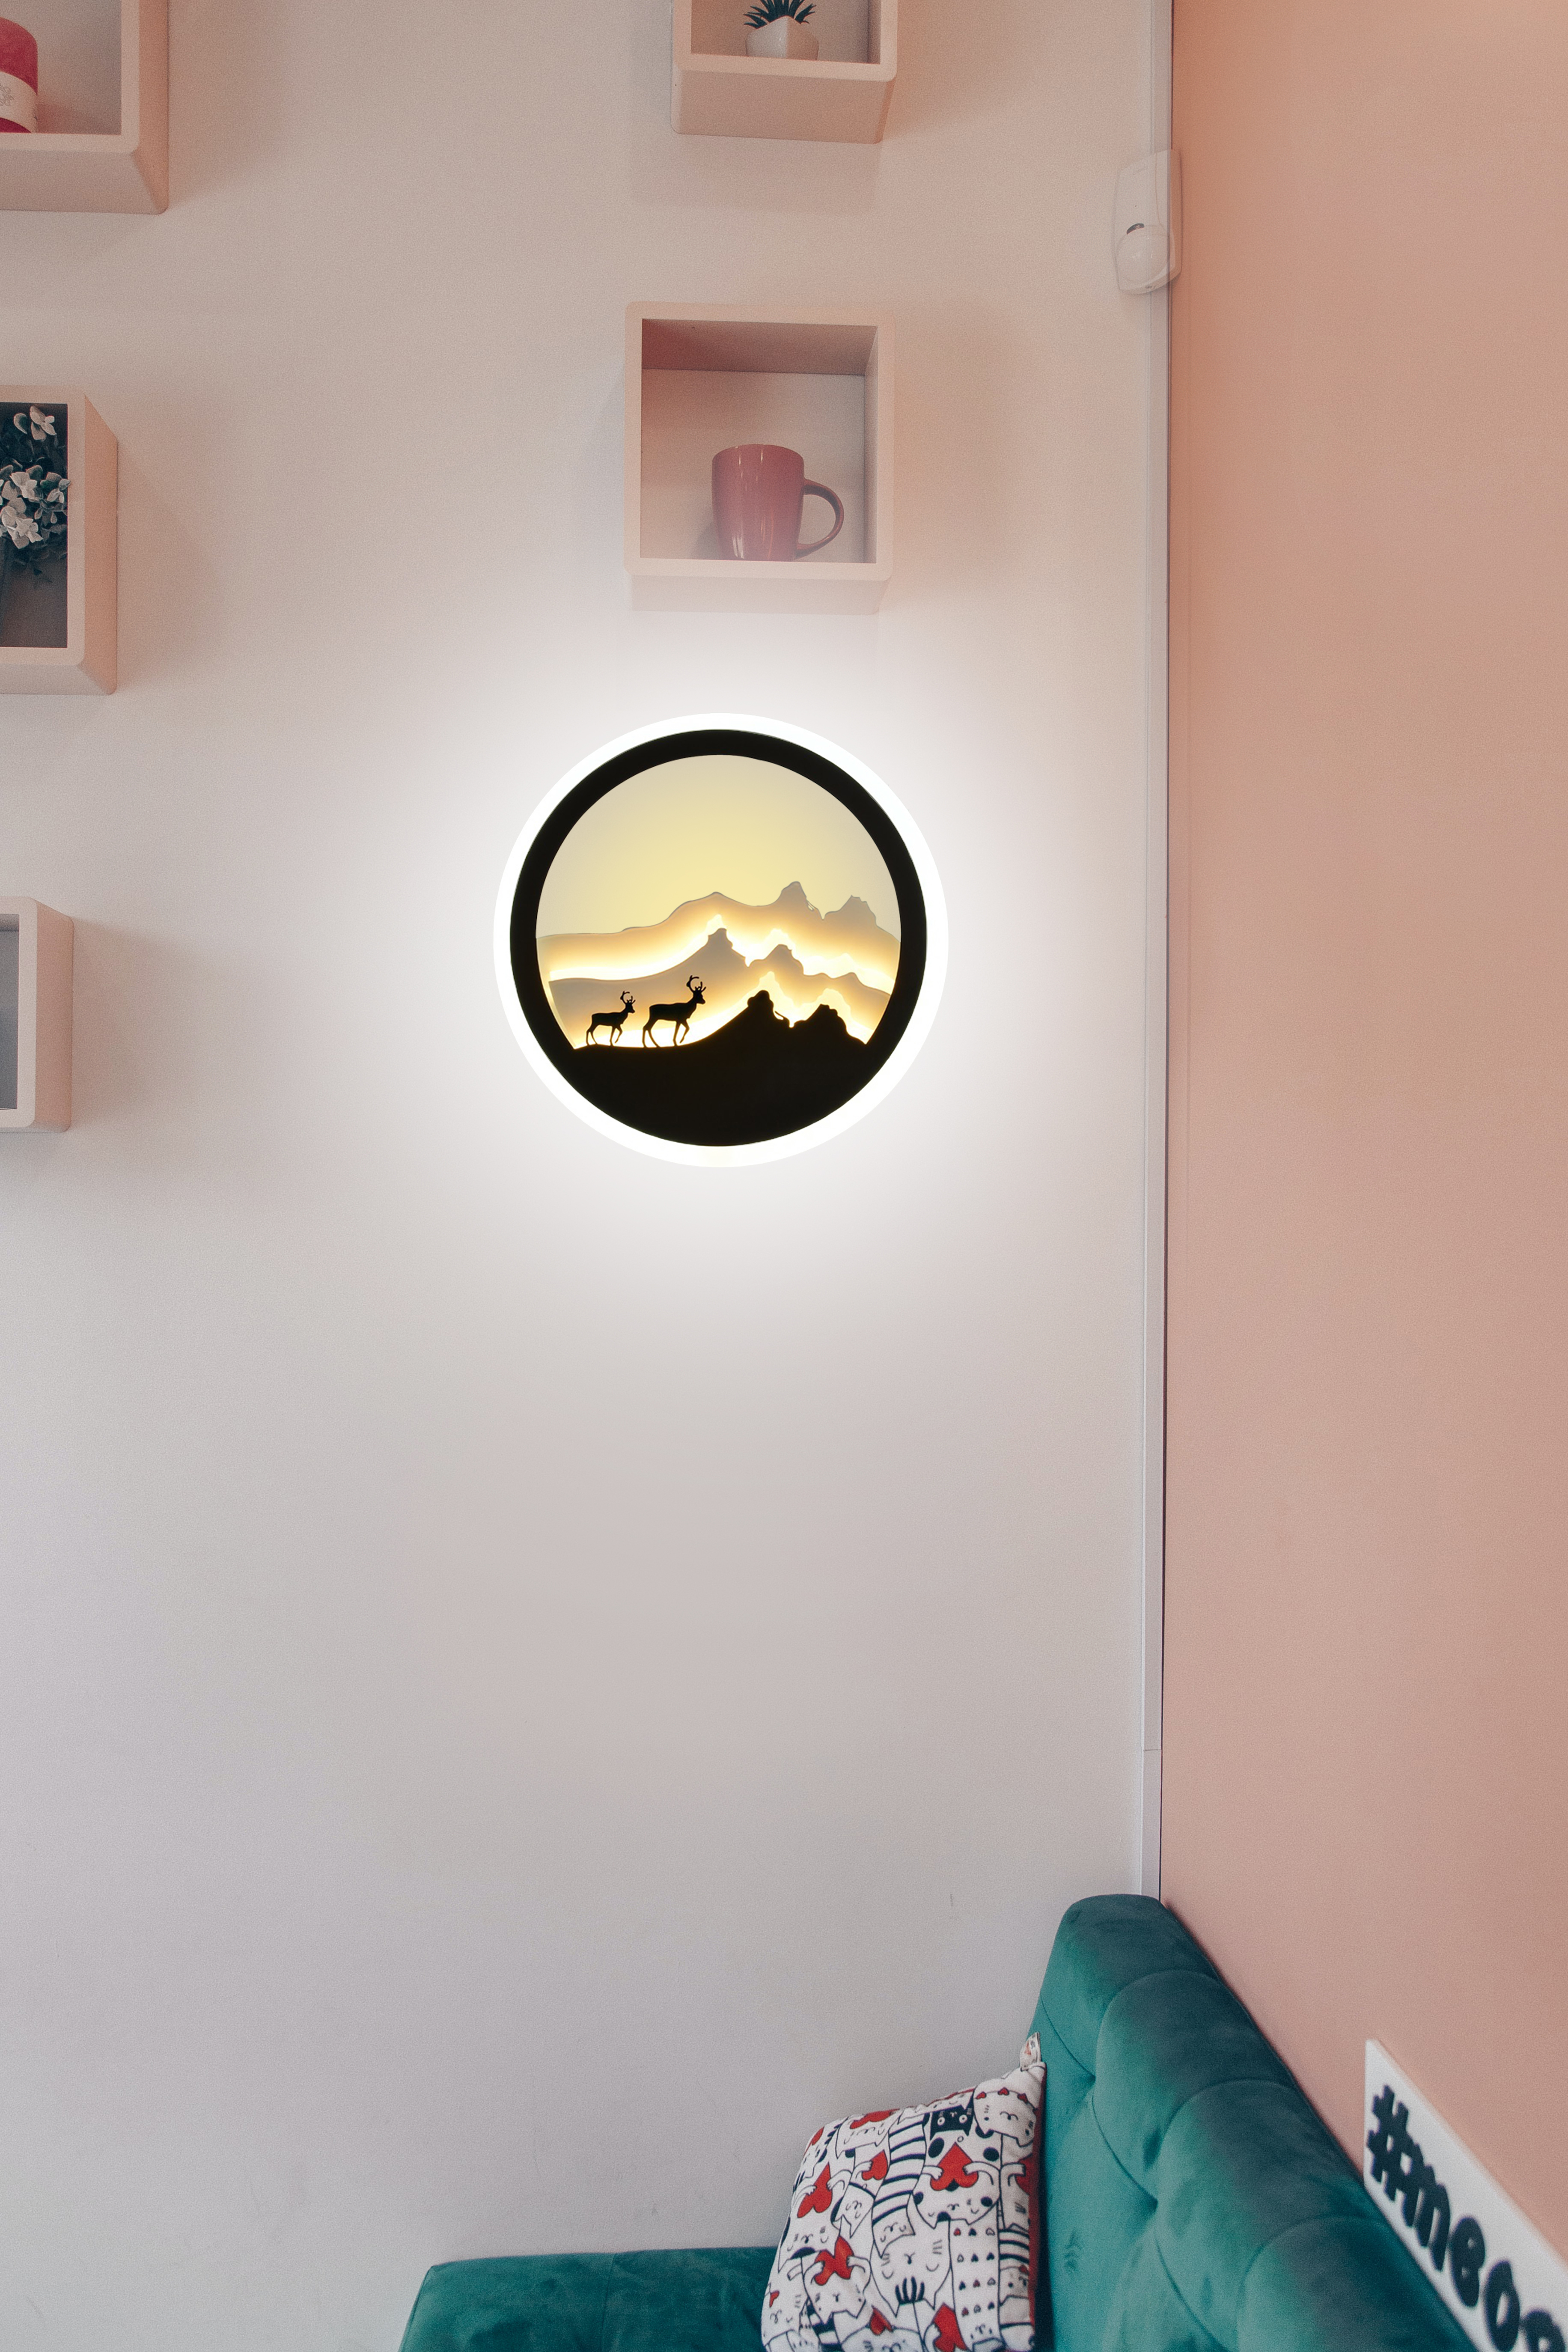 20W Mountain Deer Wall led Lamp, 3D (Warm White + Cold White)